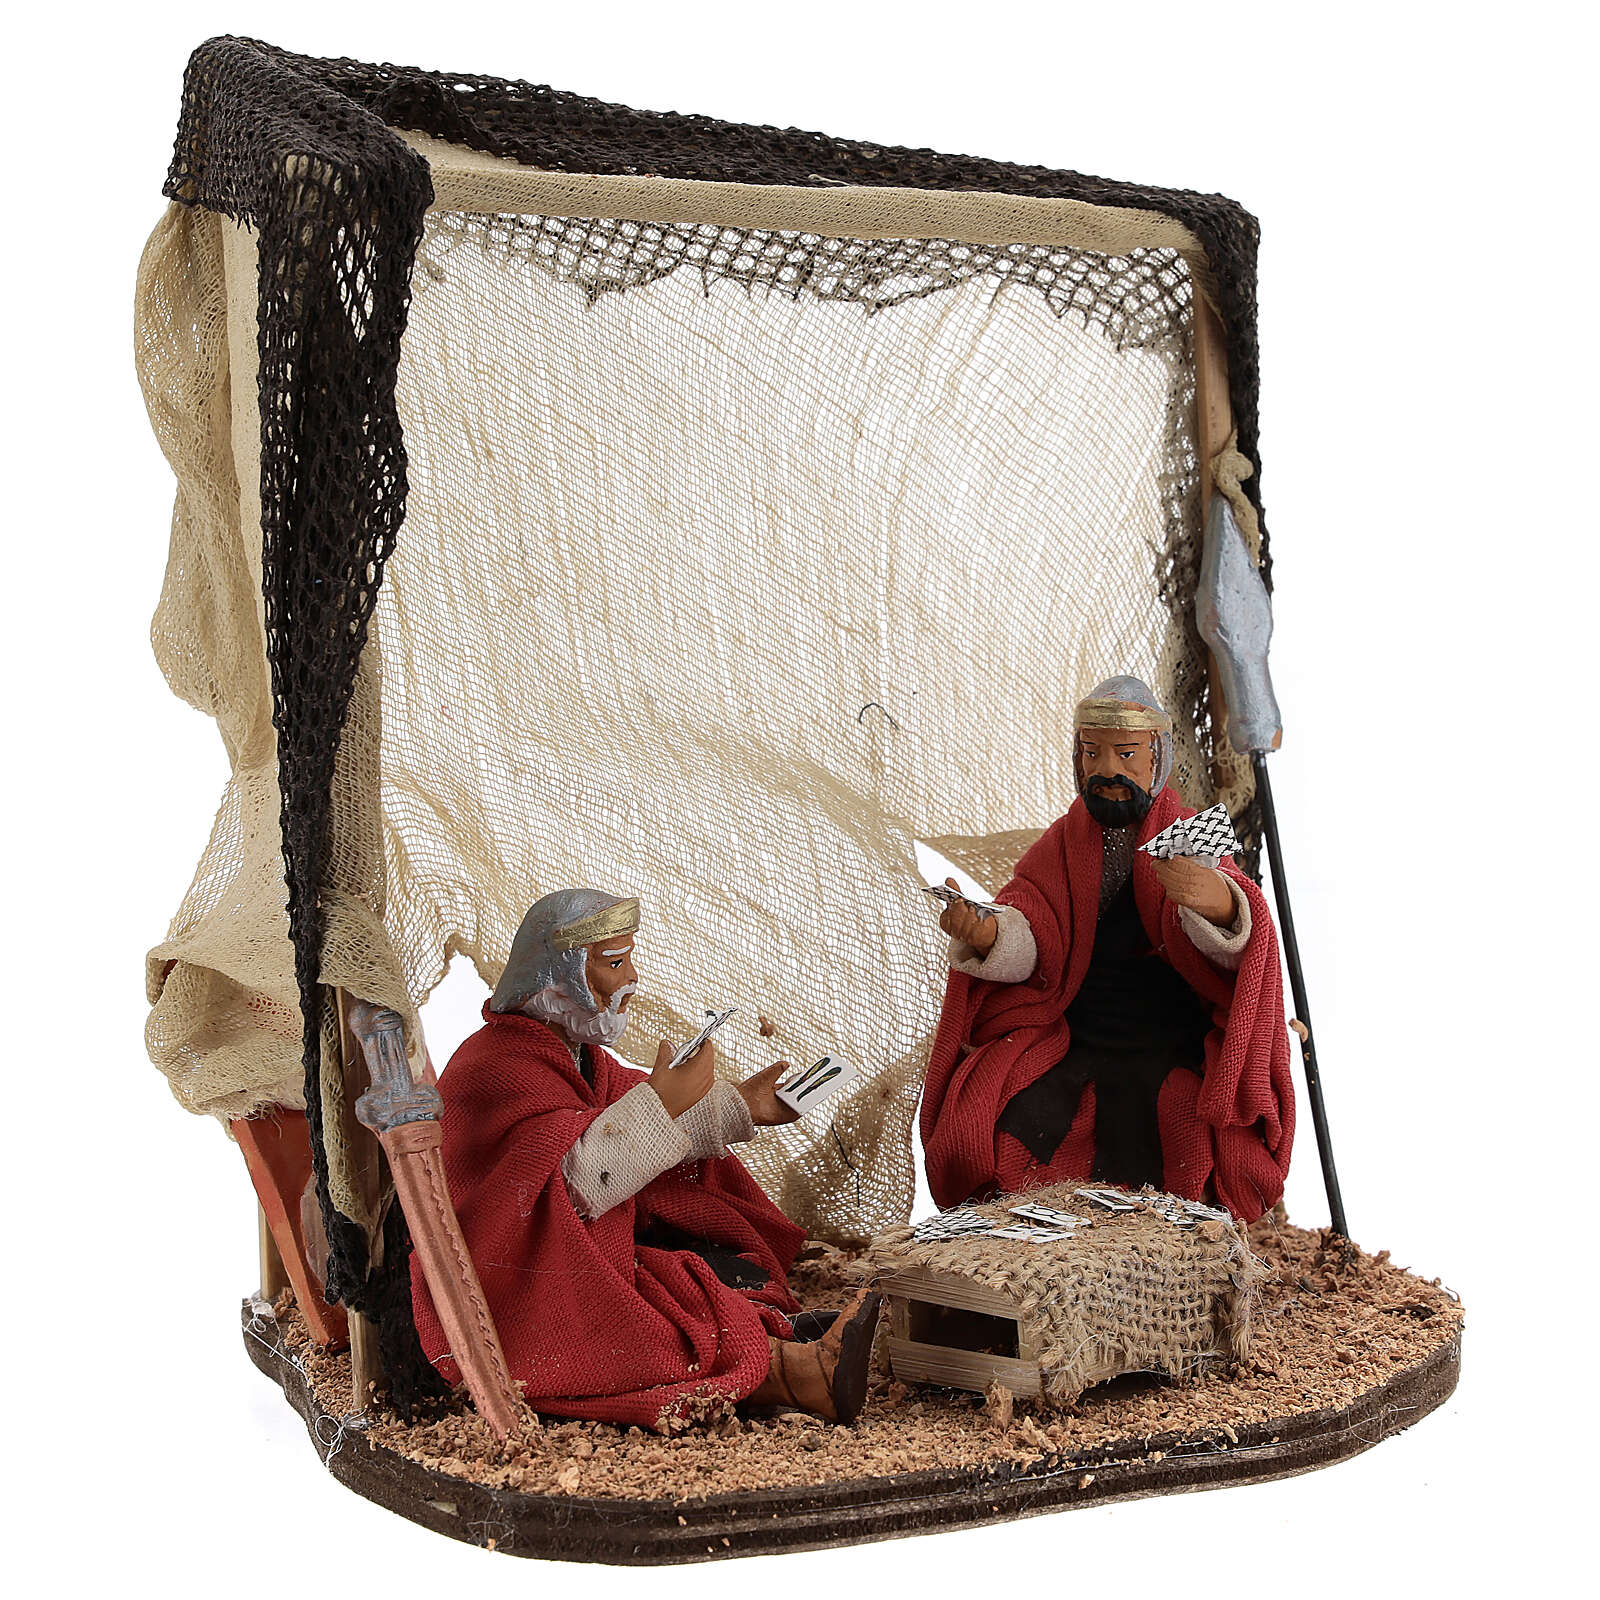 Soldiers playing cards figurines Neapolitan nativity 10 cm 4